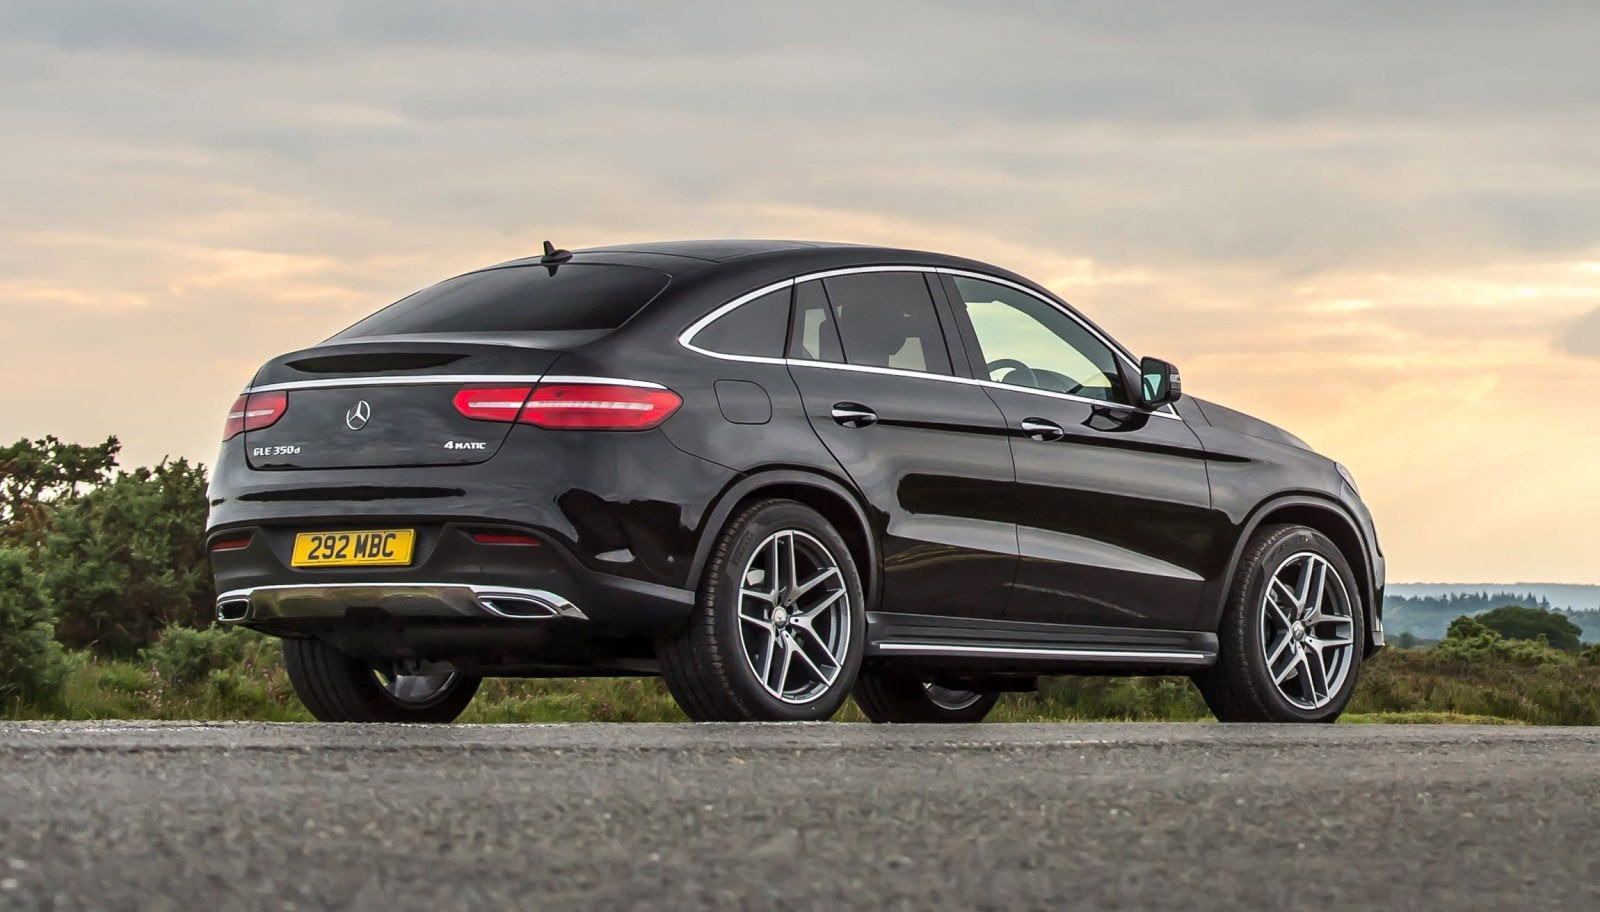 2016 Mercedes Benz GLE Class Coupe 12